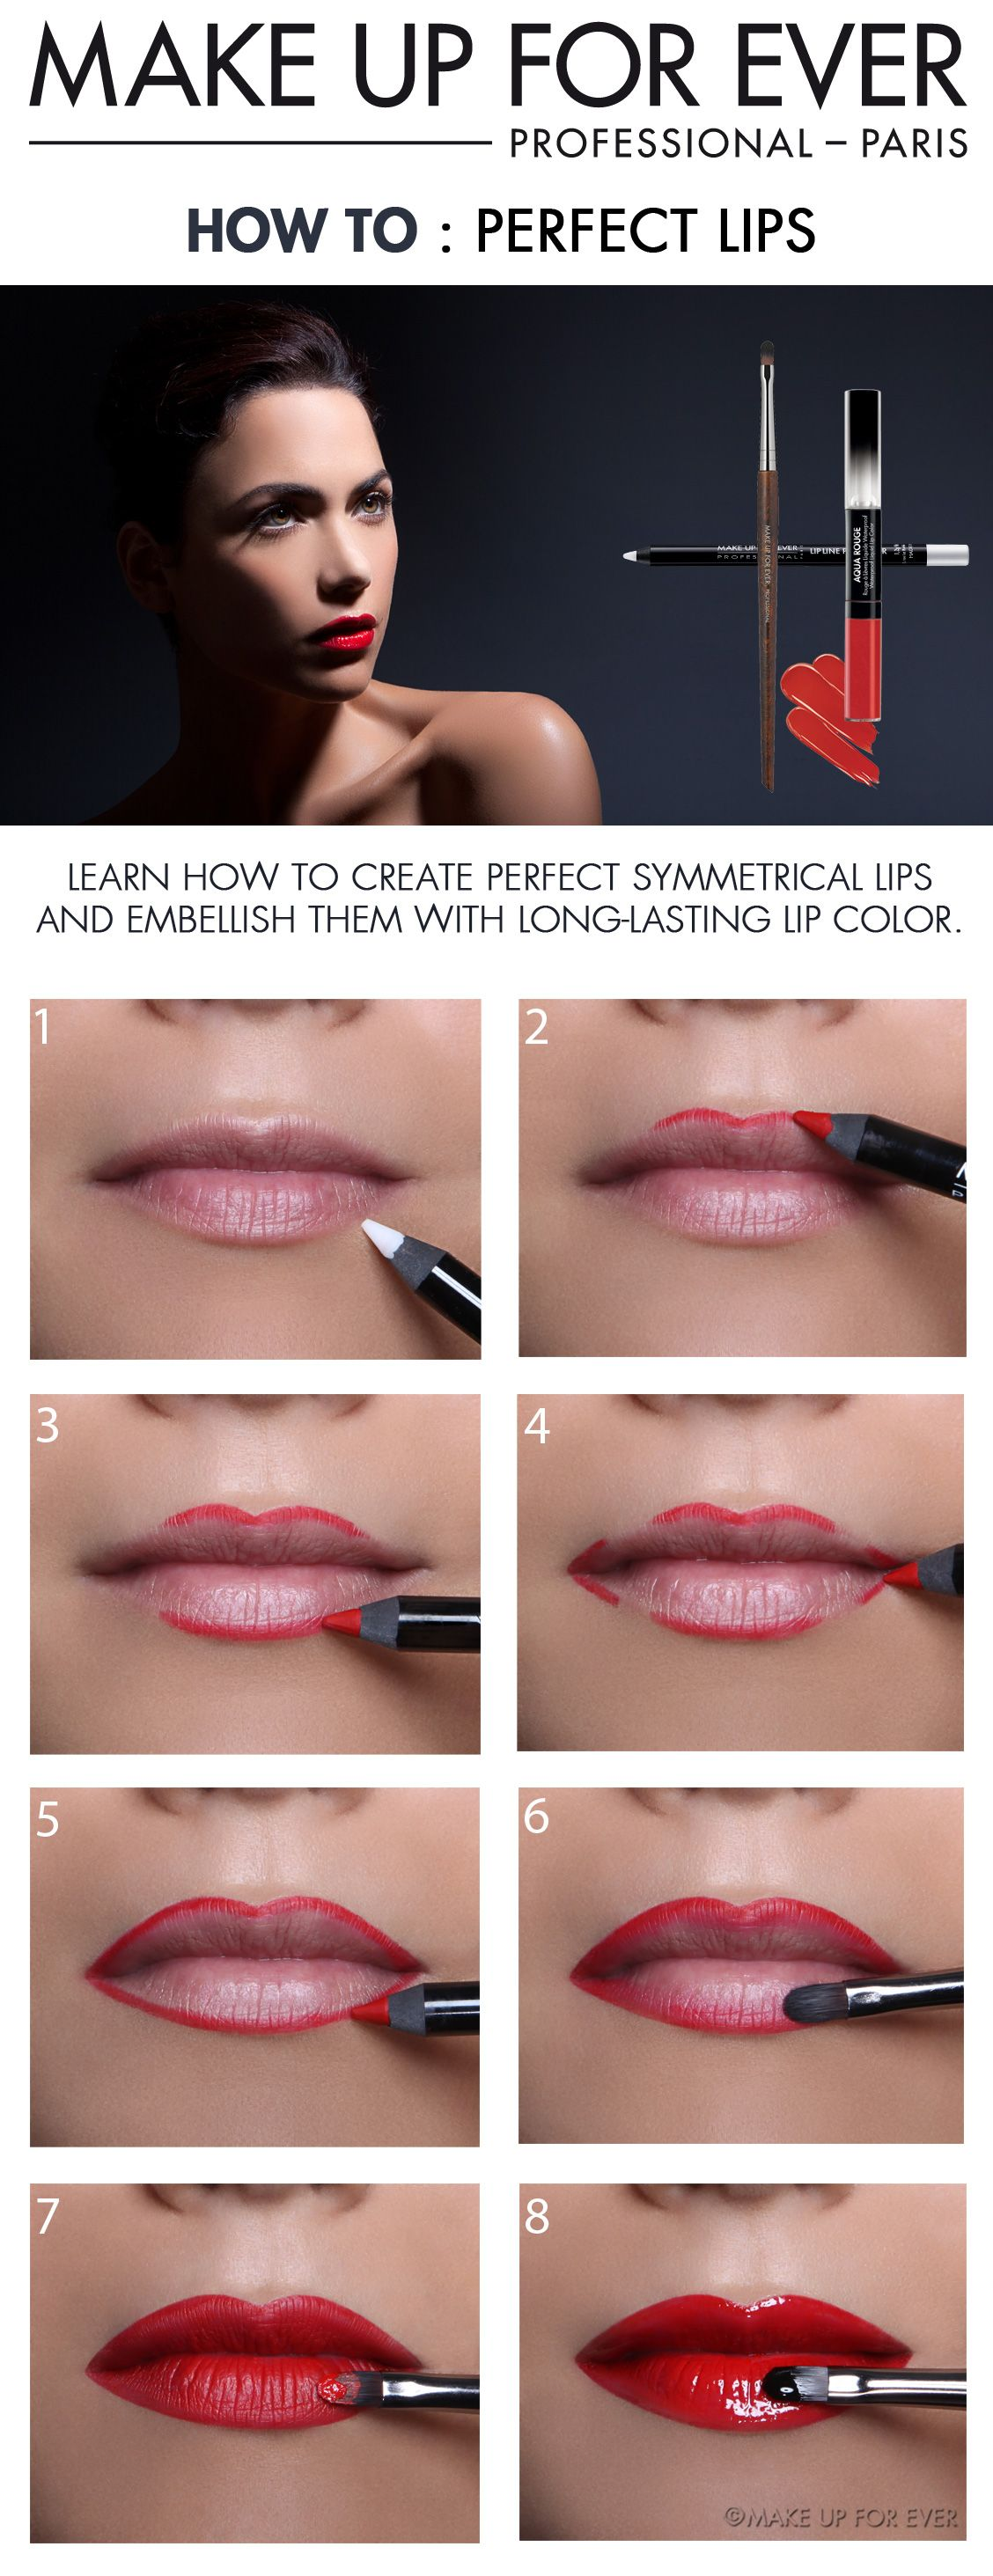 Perfect lips makeup pinterest perfect lips lips and makeup gradient lip tutorial the new gradient lipstick trend marie claire in asia you must remember that the dolly look is popular so little lips and big baditri Image collections